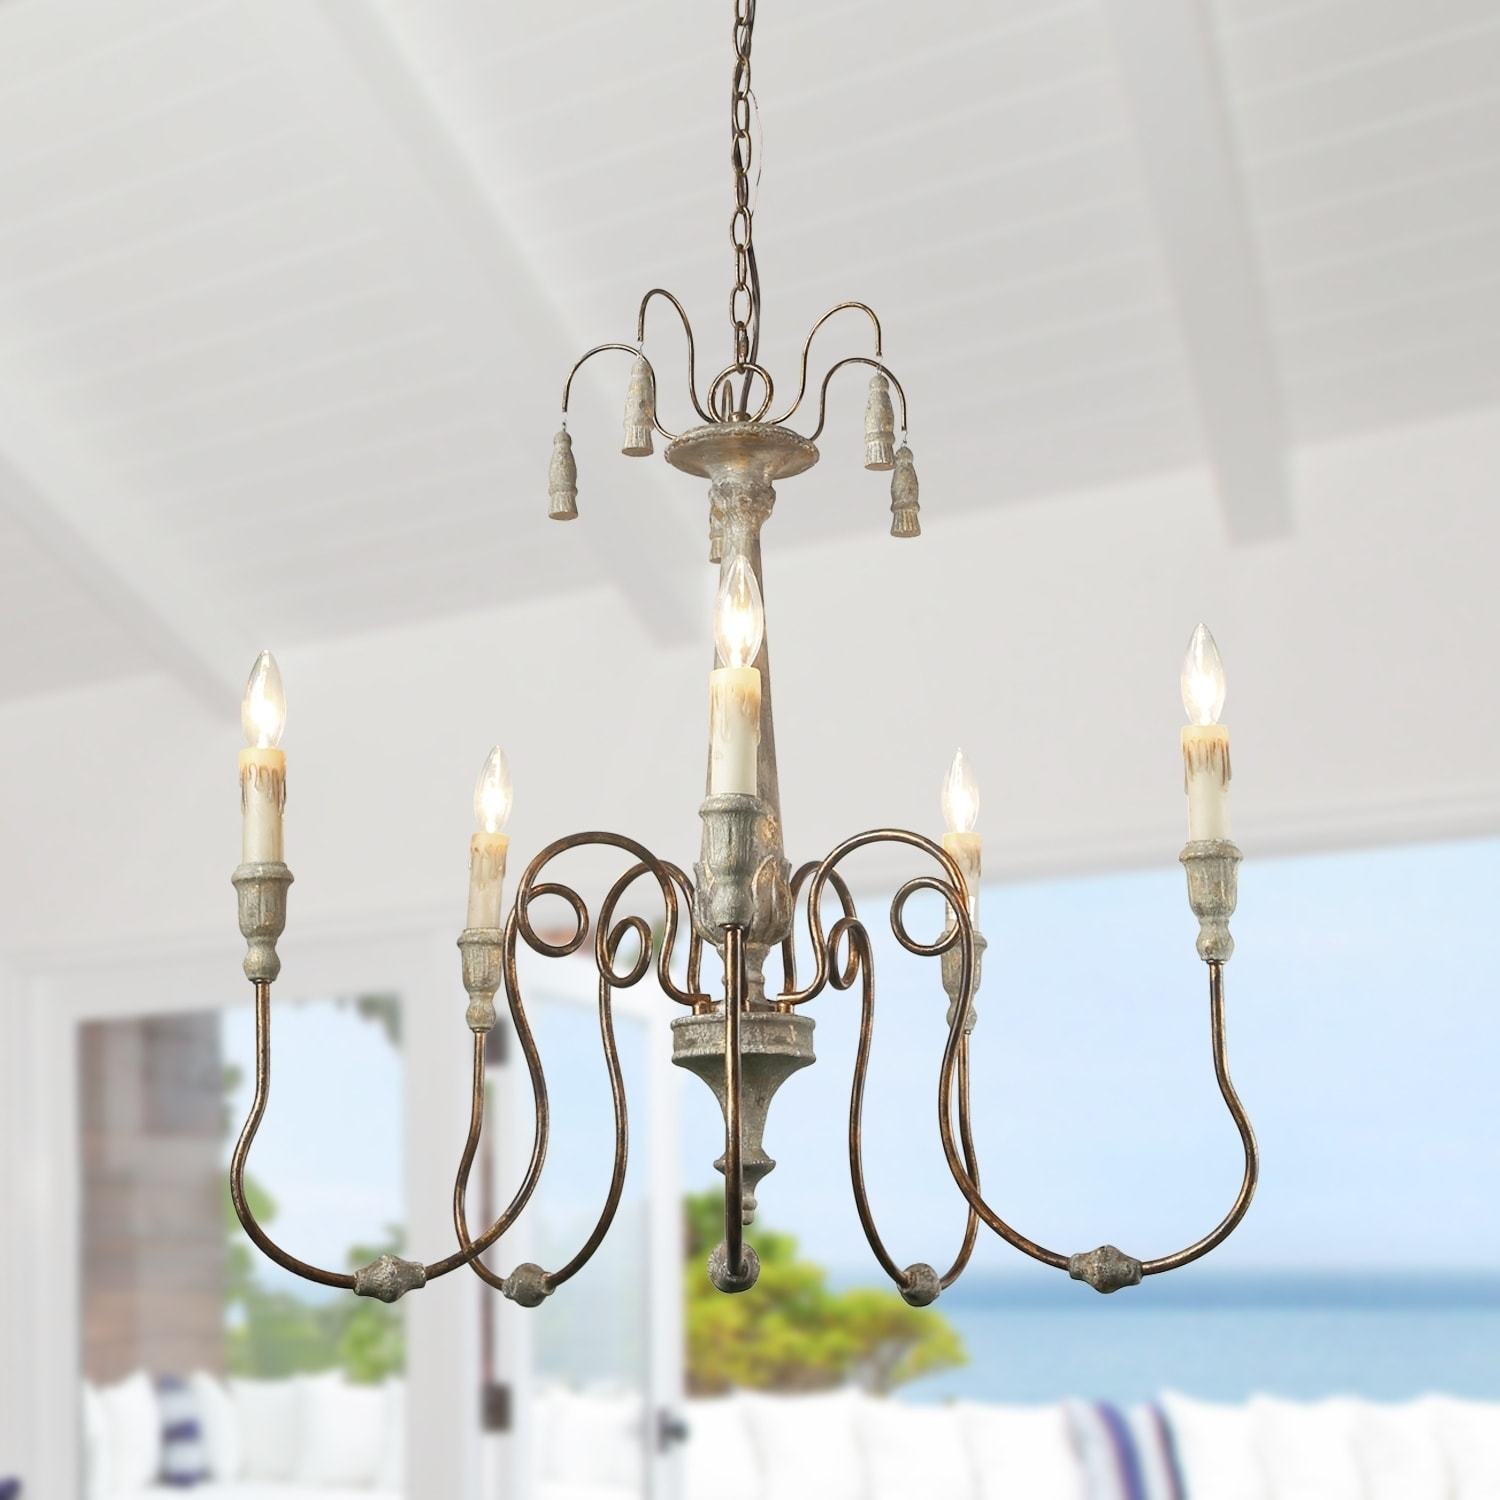 5 Light Chandeliers French Country Ceiling Lighting Pendant Lights N A